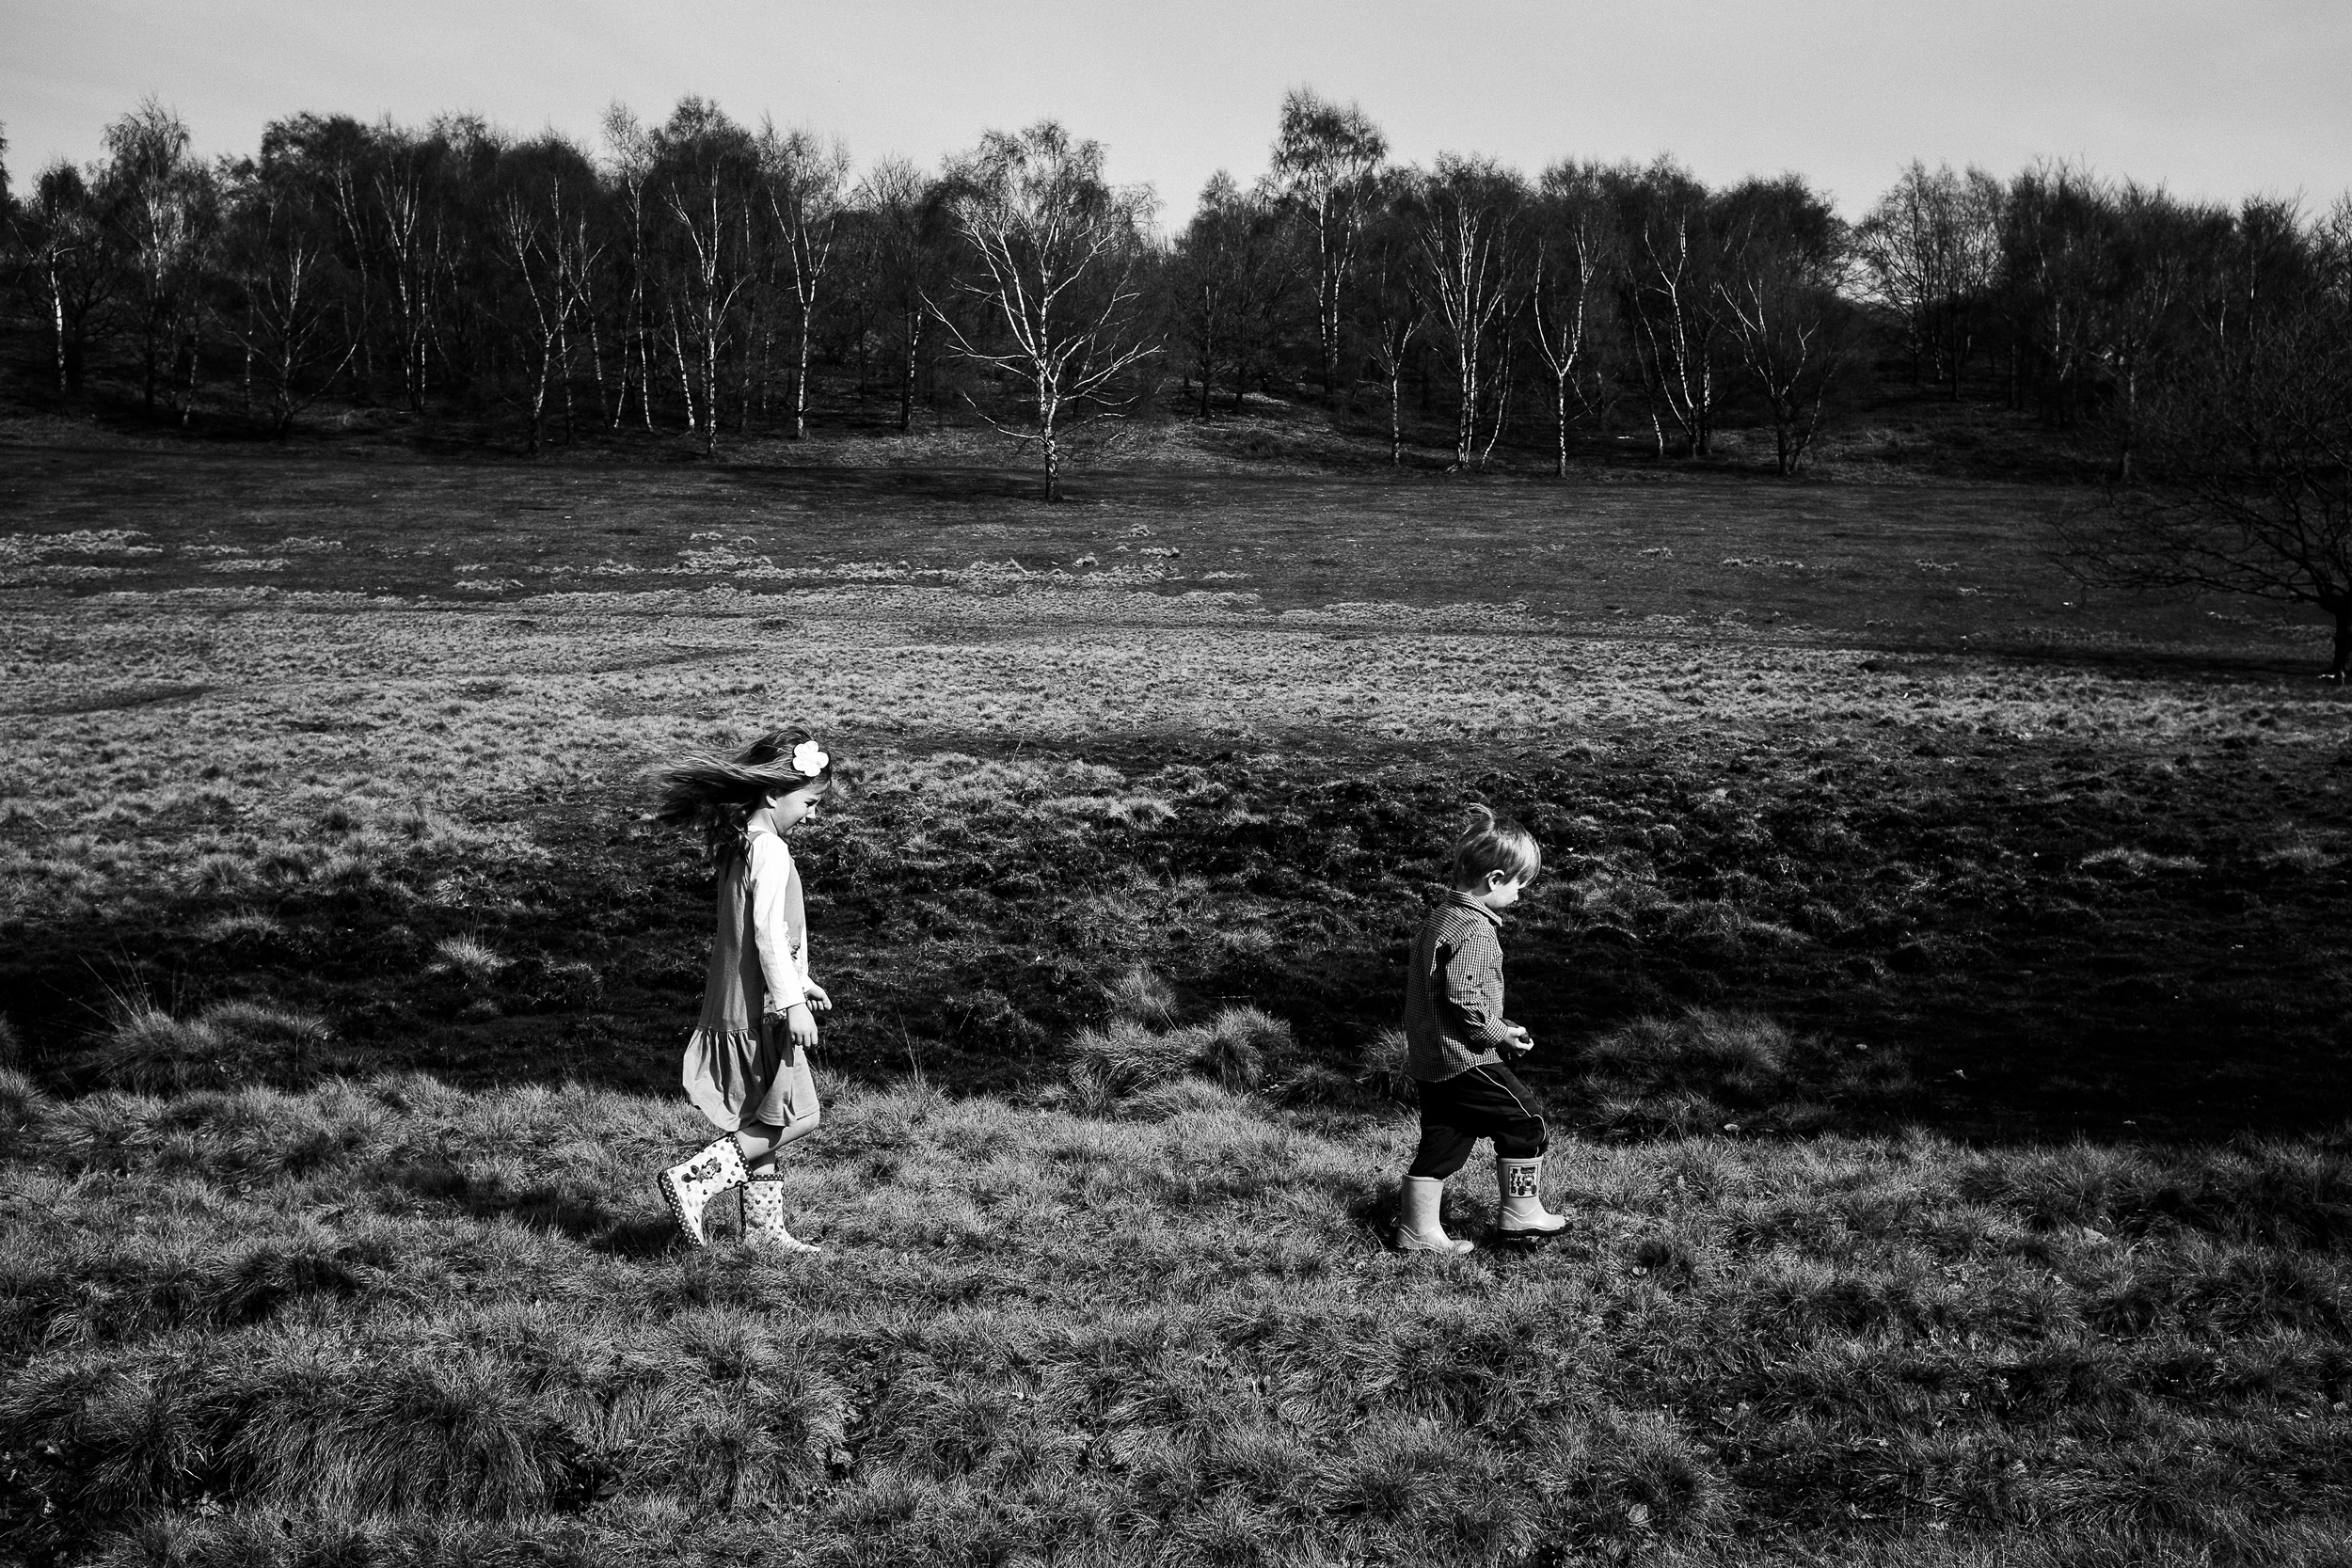 Expedition  - Downs Banks, Barlaston, Staffordshire - March 2014